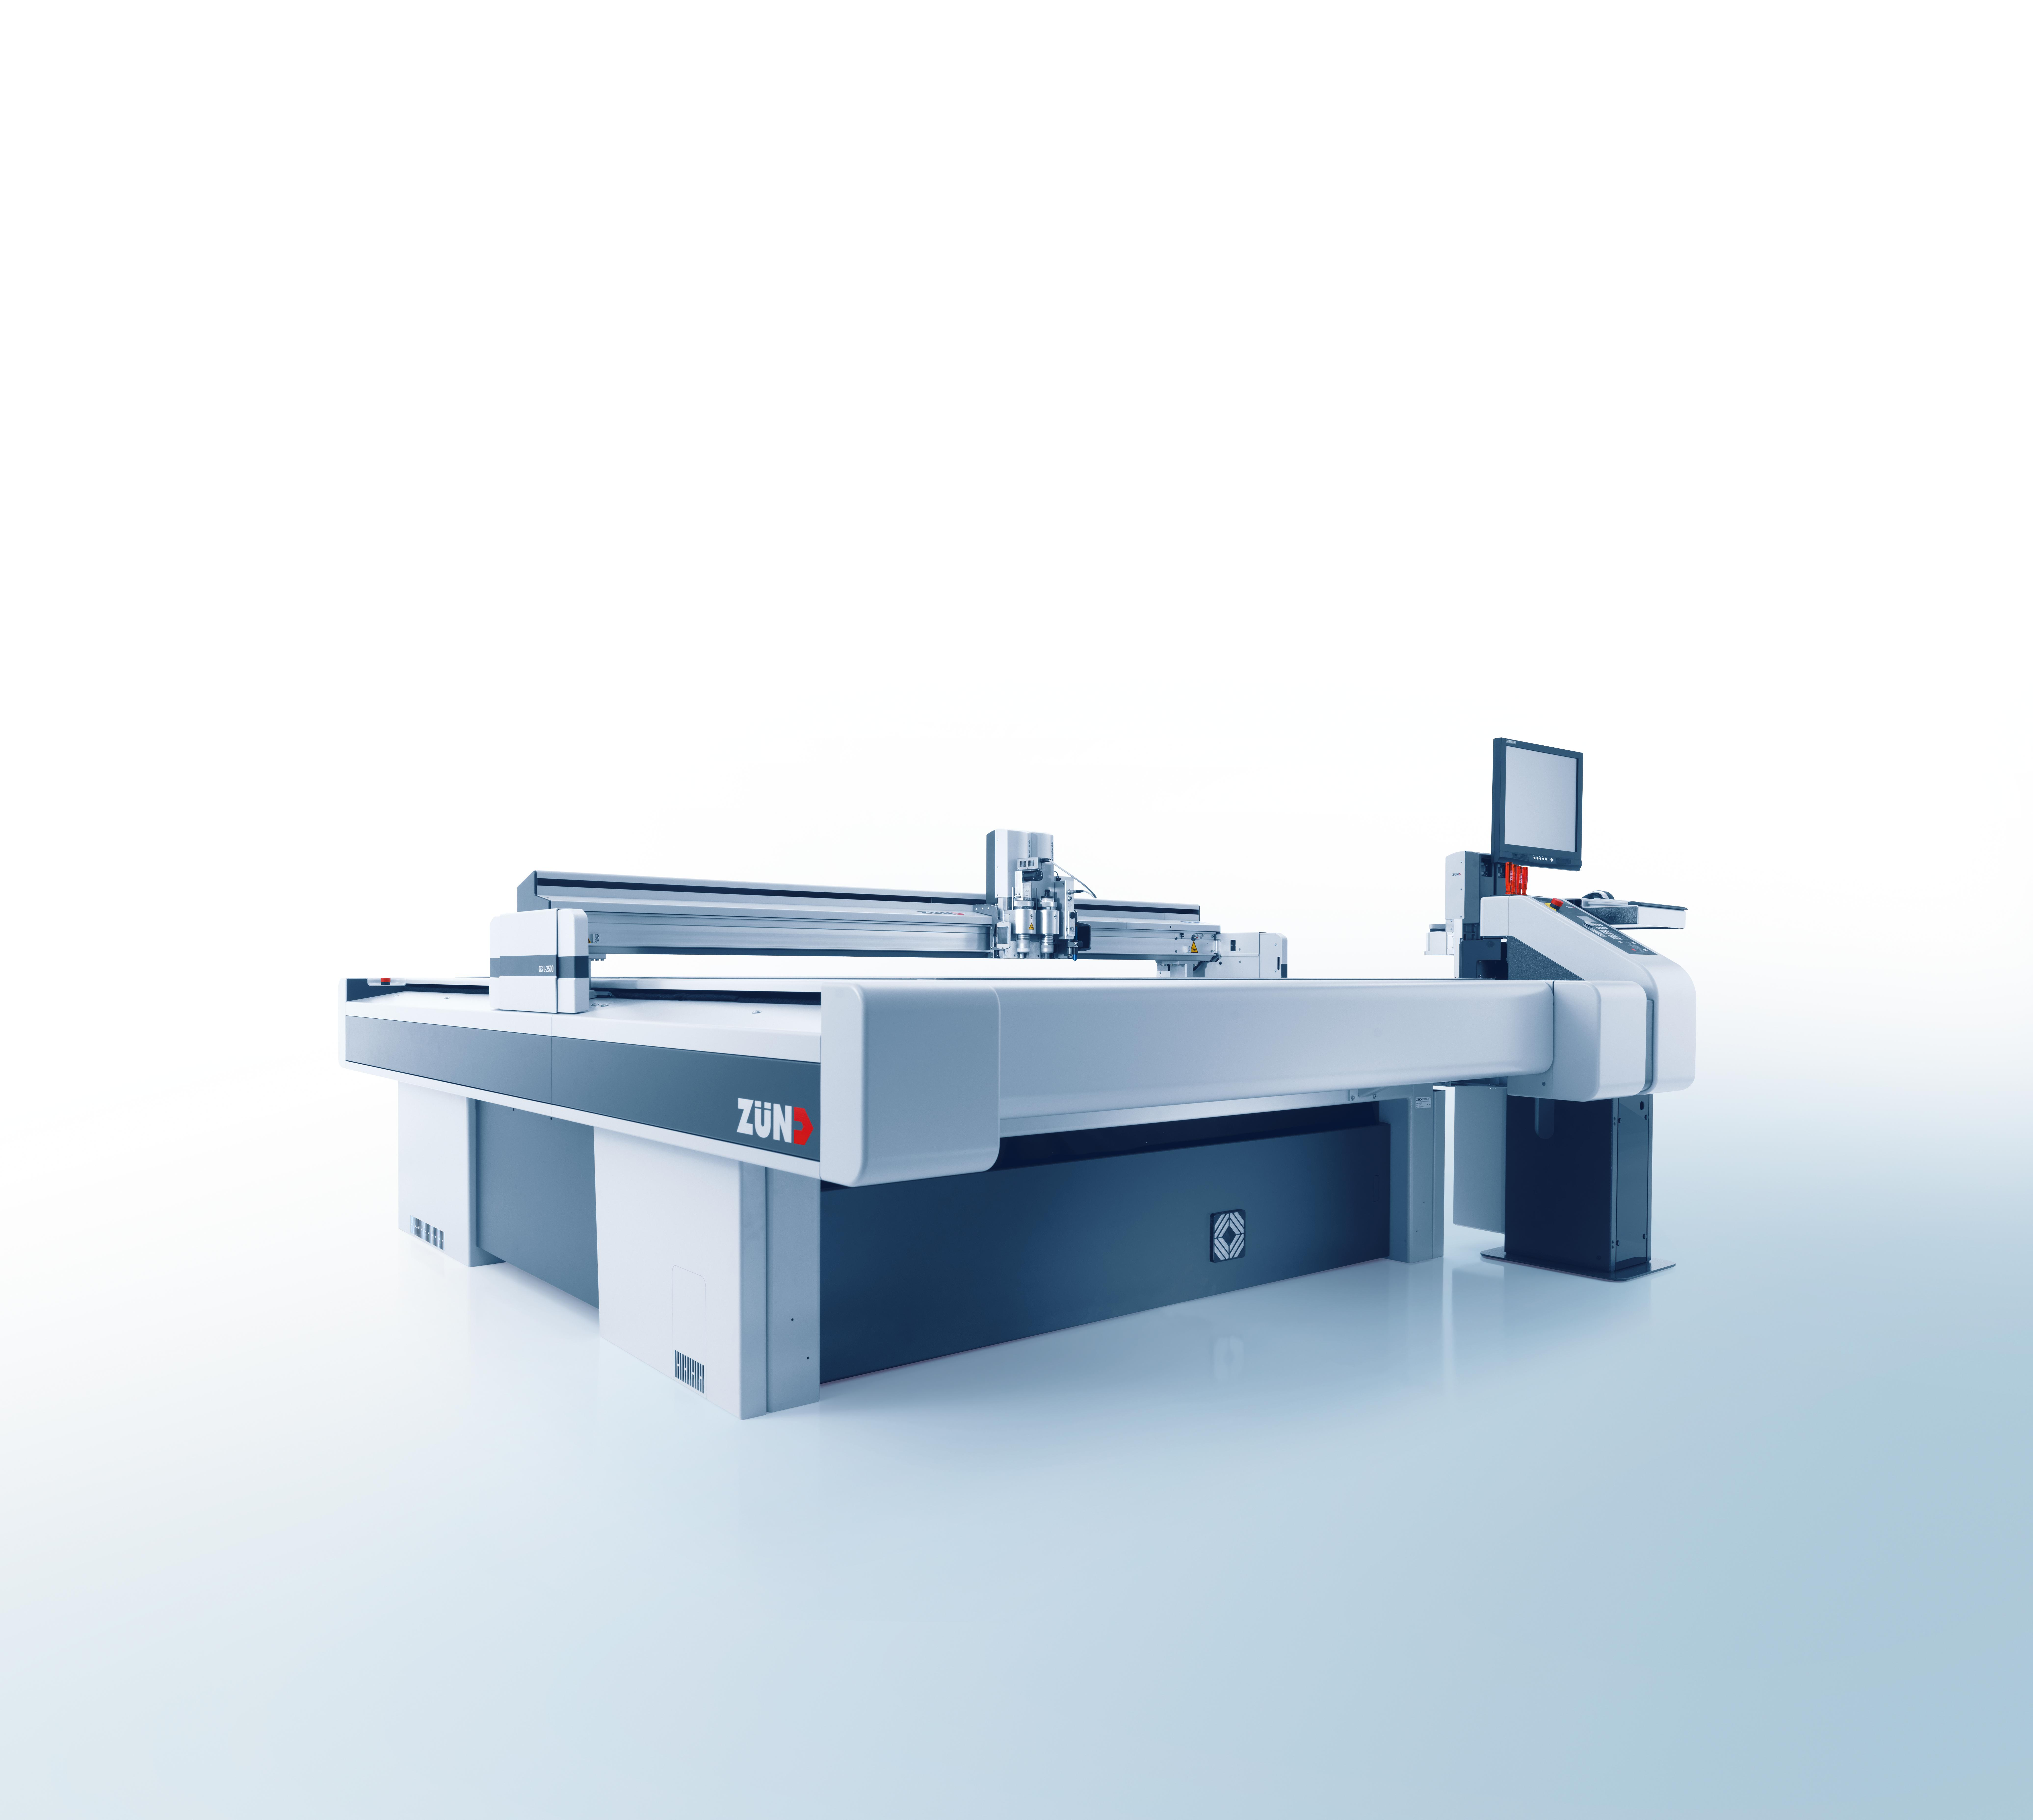 Zünd Digital Cutting Systems